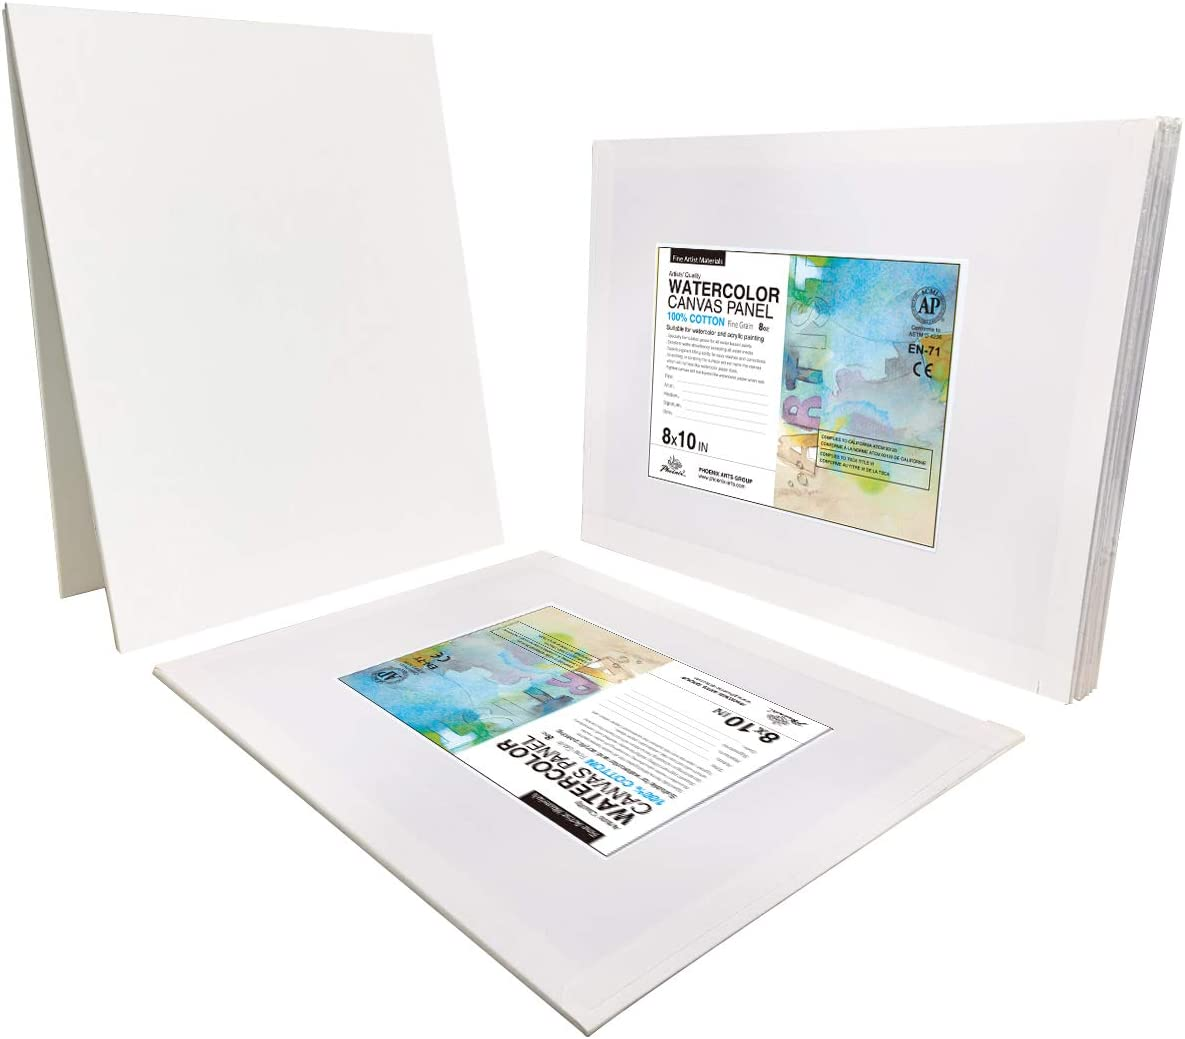 Triple Primed Cotton Canvas Boards for Watercolor Painting 5x5 Inch//12 Pack PHOENIX Watercolor Painting Canvas Panels